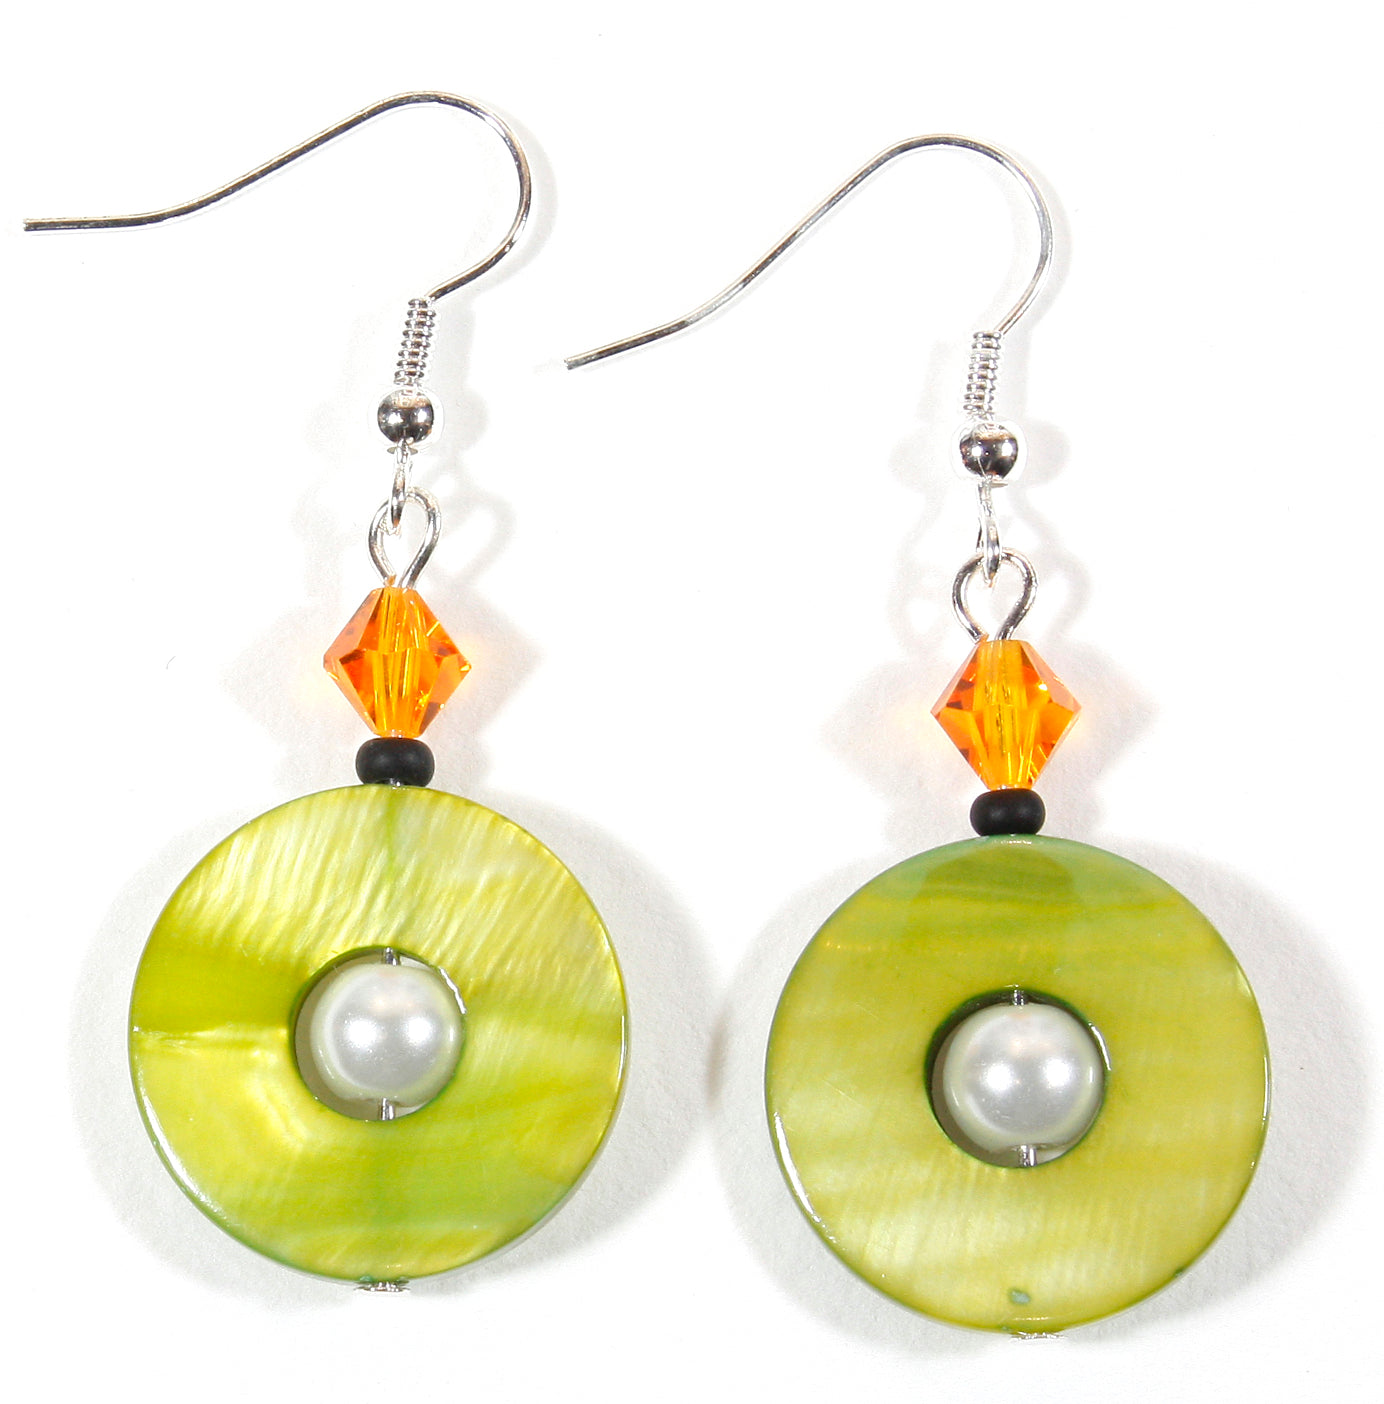 Green Planet Earrings with Orange Crystals, Mother-of-Pearl, 2.0 Inches